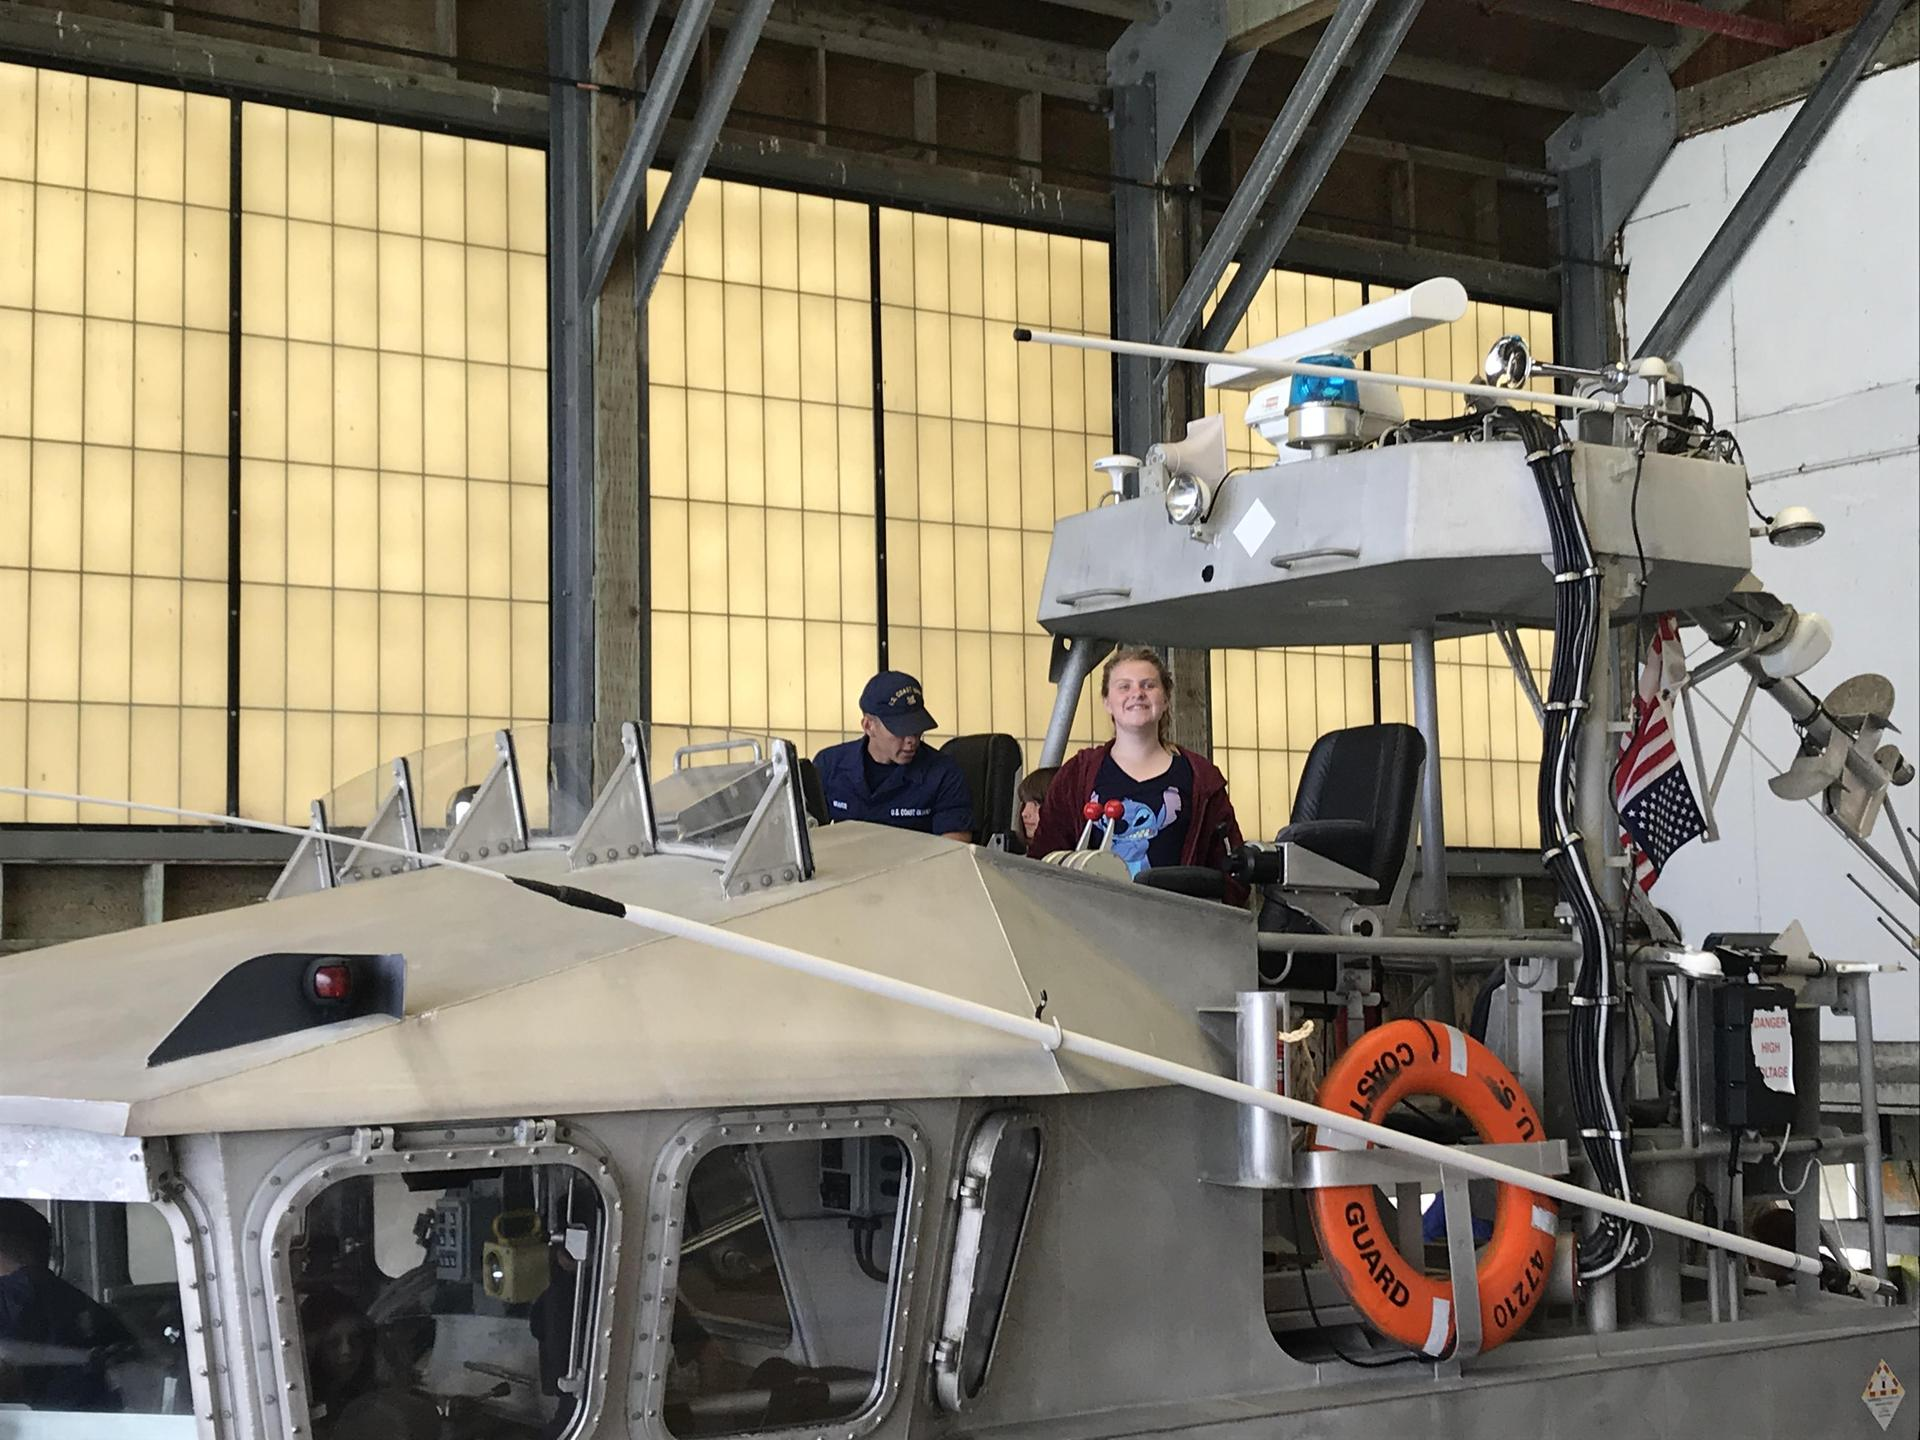 Touring the Coast Guard Small Boat Station